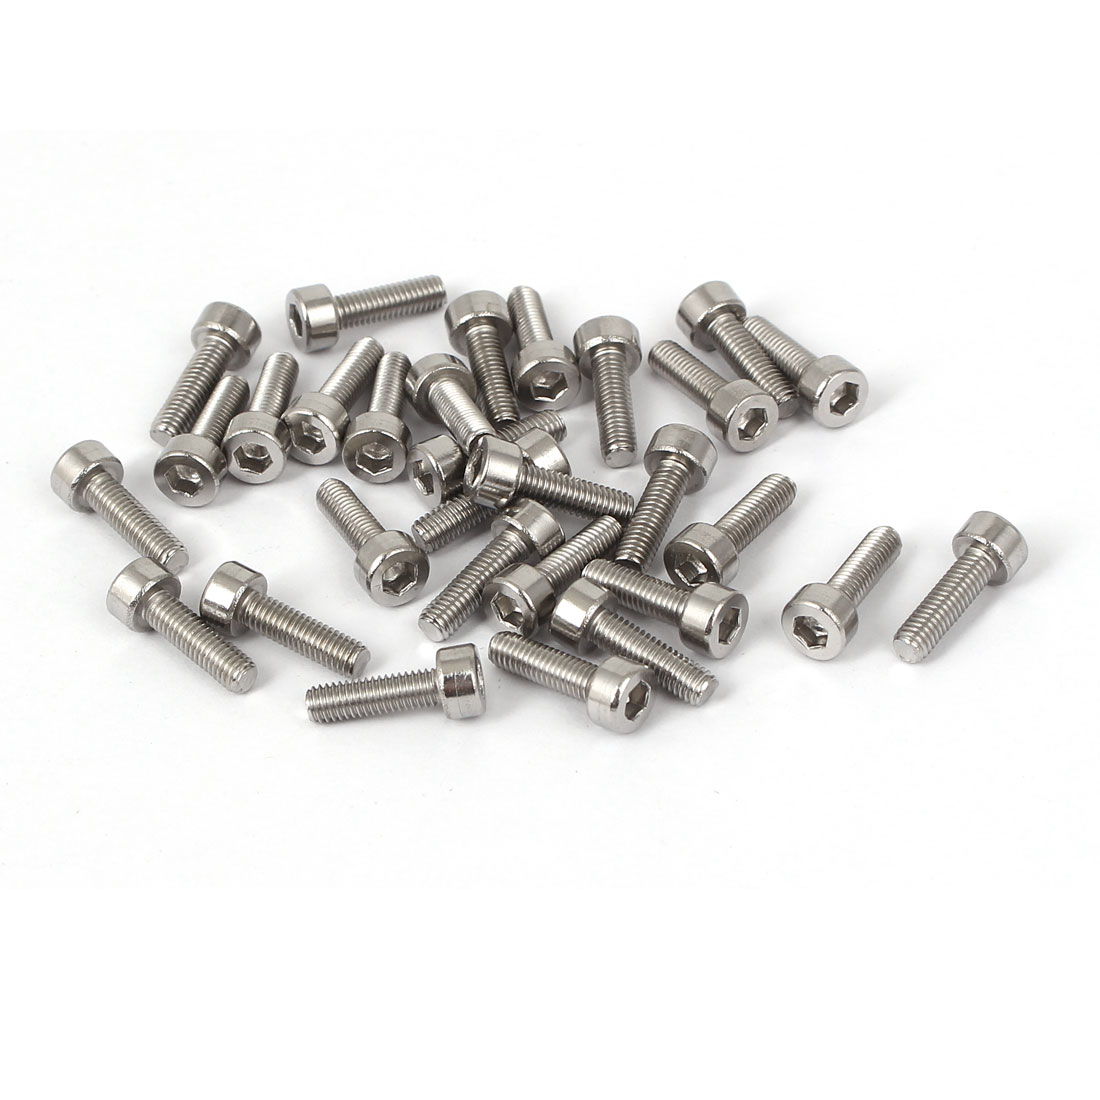 30 Pcs M3x10mm 316 Stainless Steel Hex Socket Head Cap Screws Bolts Fasteners